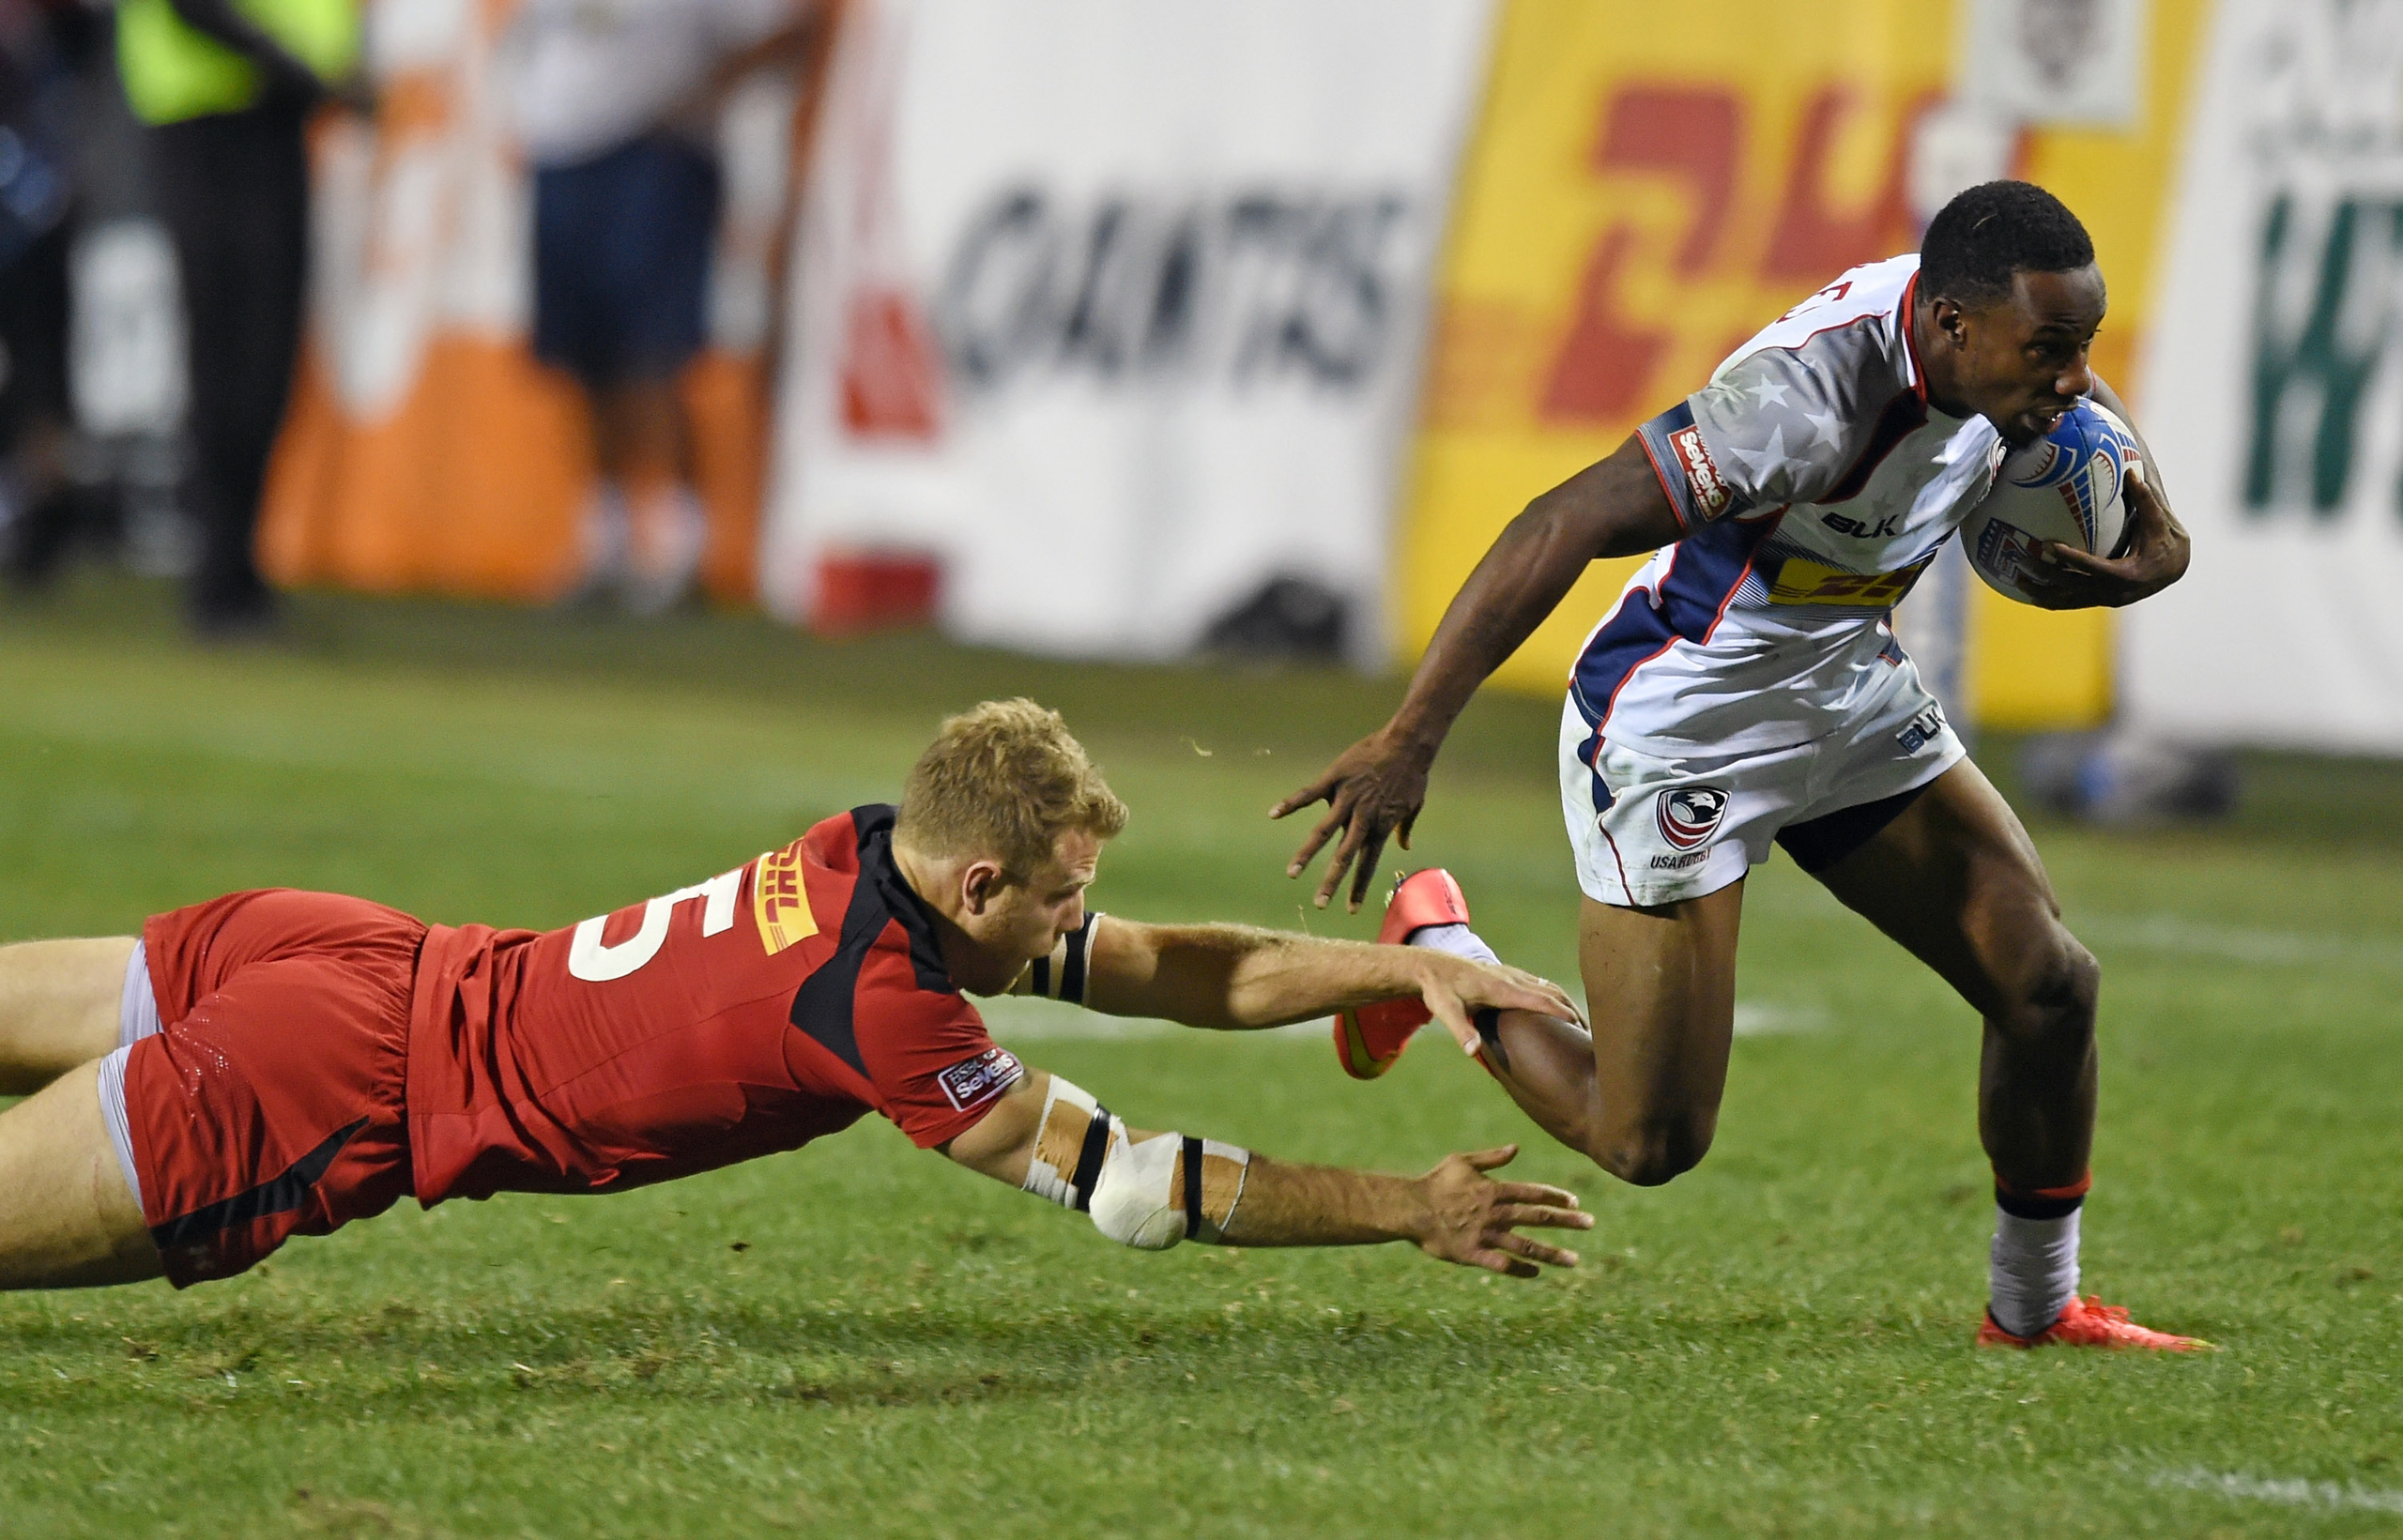 <strong>Carlin Isles, Rugby, USA</strong>The former football and track star stumbled across an online video of rugby in 2012 and decided to try the sport. He's now regarded as the fastest man in the game, which is back in the Olympics after 92 years. Thanks to crossover athletes like Isles and New England Patriot Nate Ebner, the U.S. has a real shot at the podium in the speedier version of the game, known as rugby sevens.